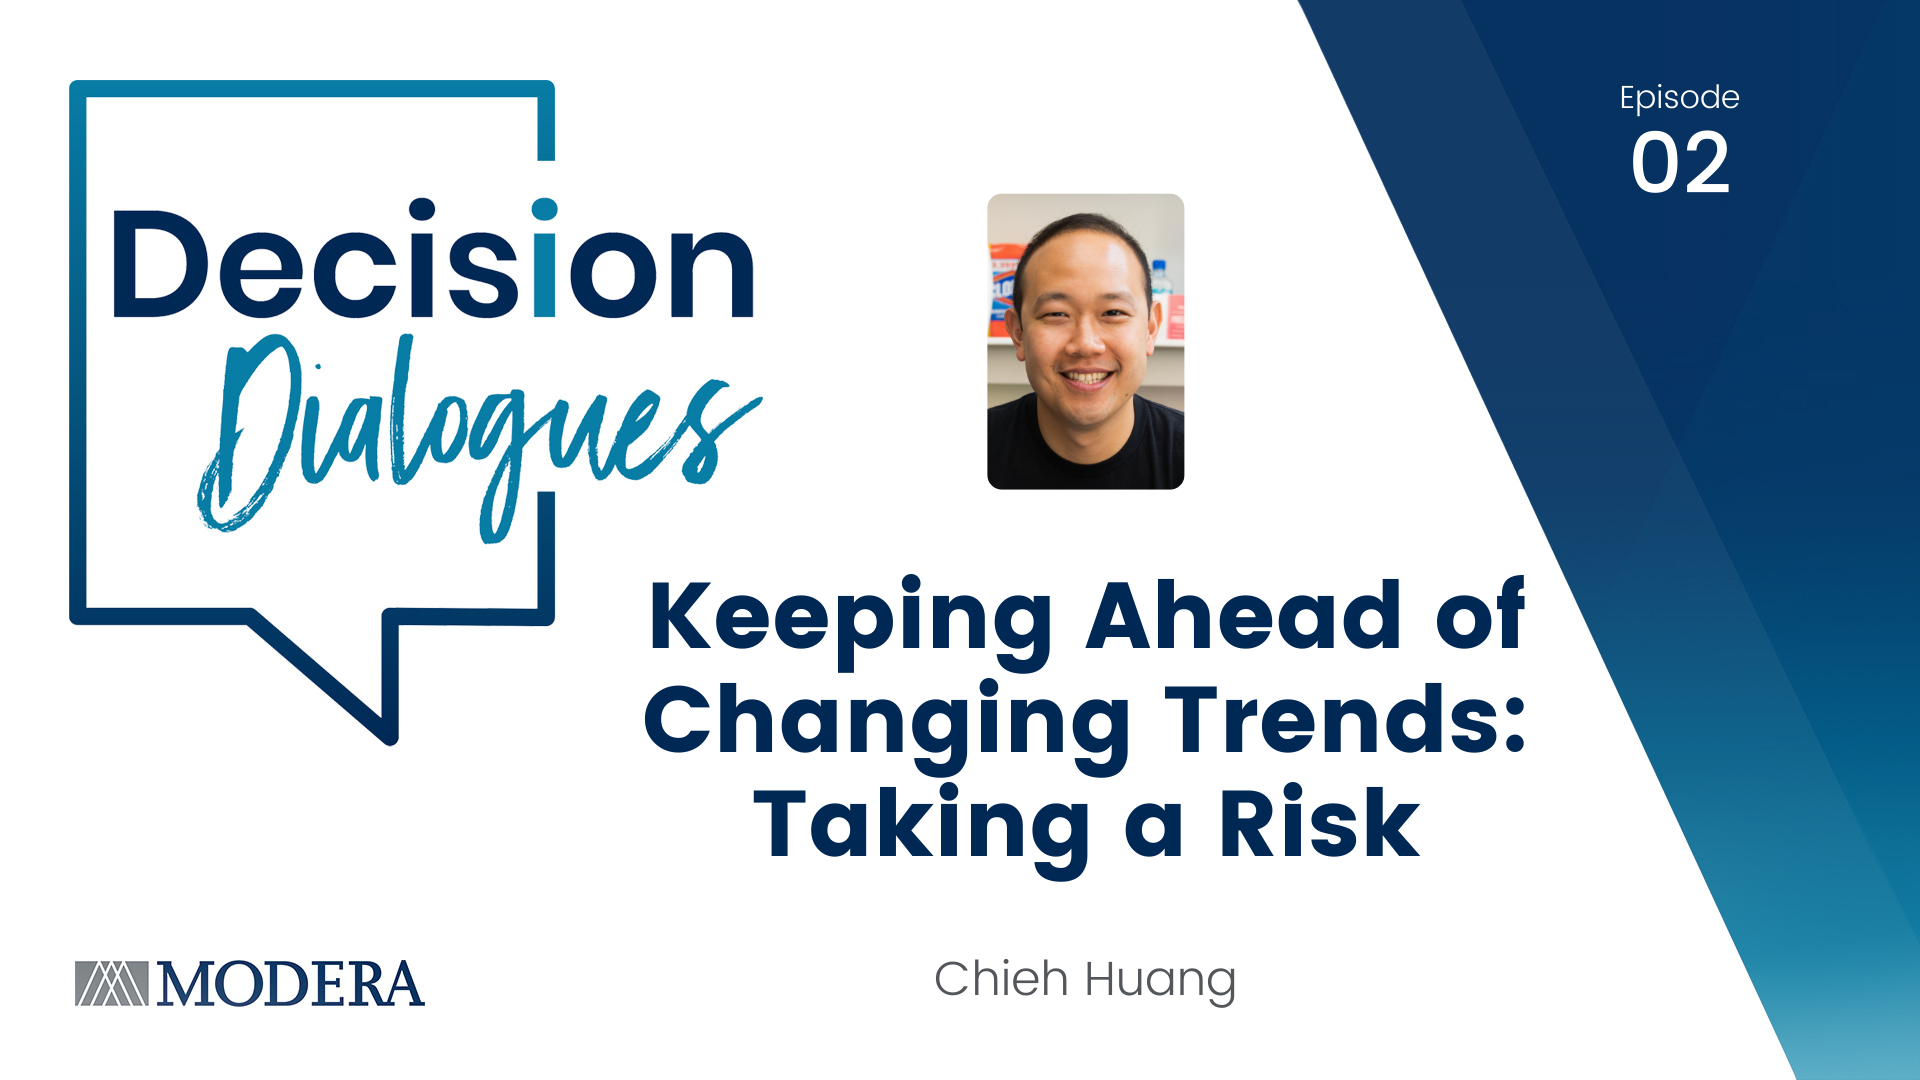 Decision Dialogues - Episode 02 - Keeping Ahead of Changing Times: Taking a Risk - Chieh Huang